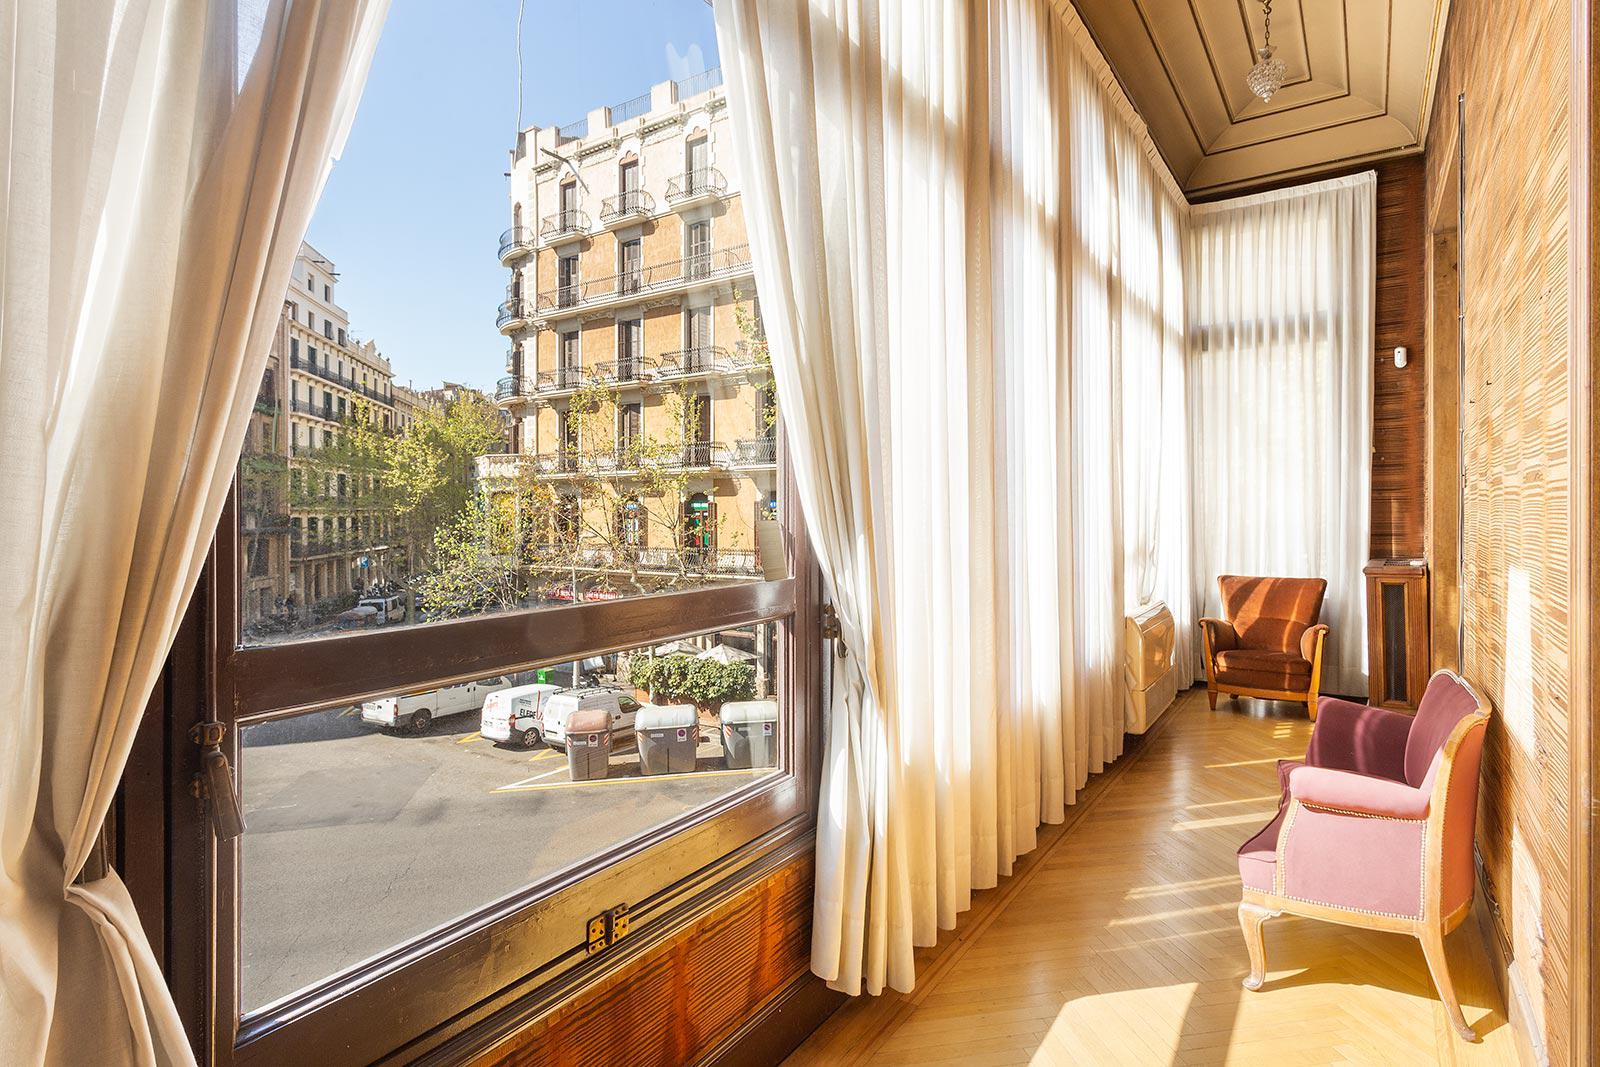 214993 Apartment for sale in Eixample, Dreta Eixample 7